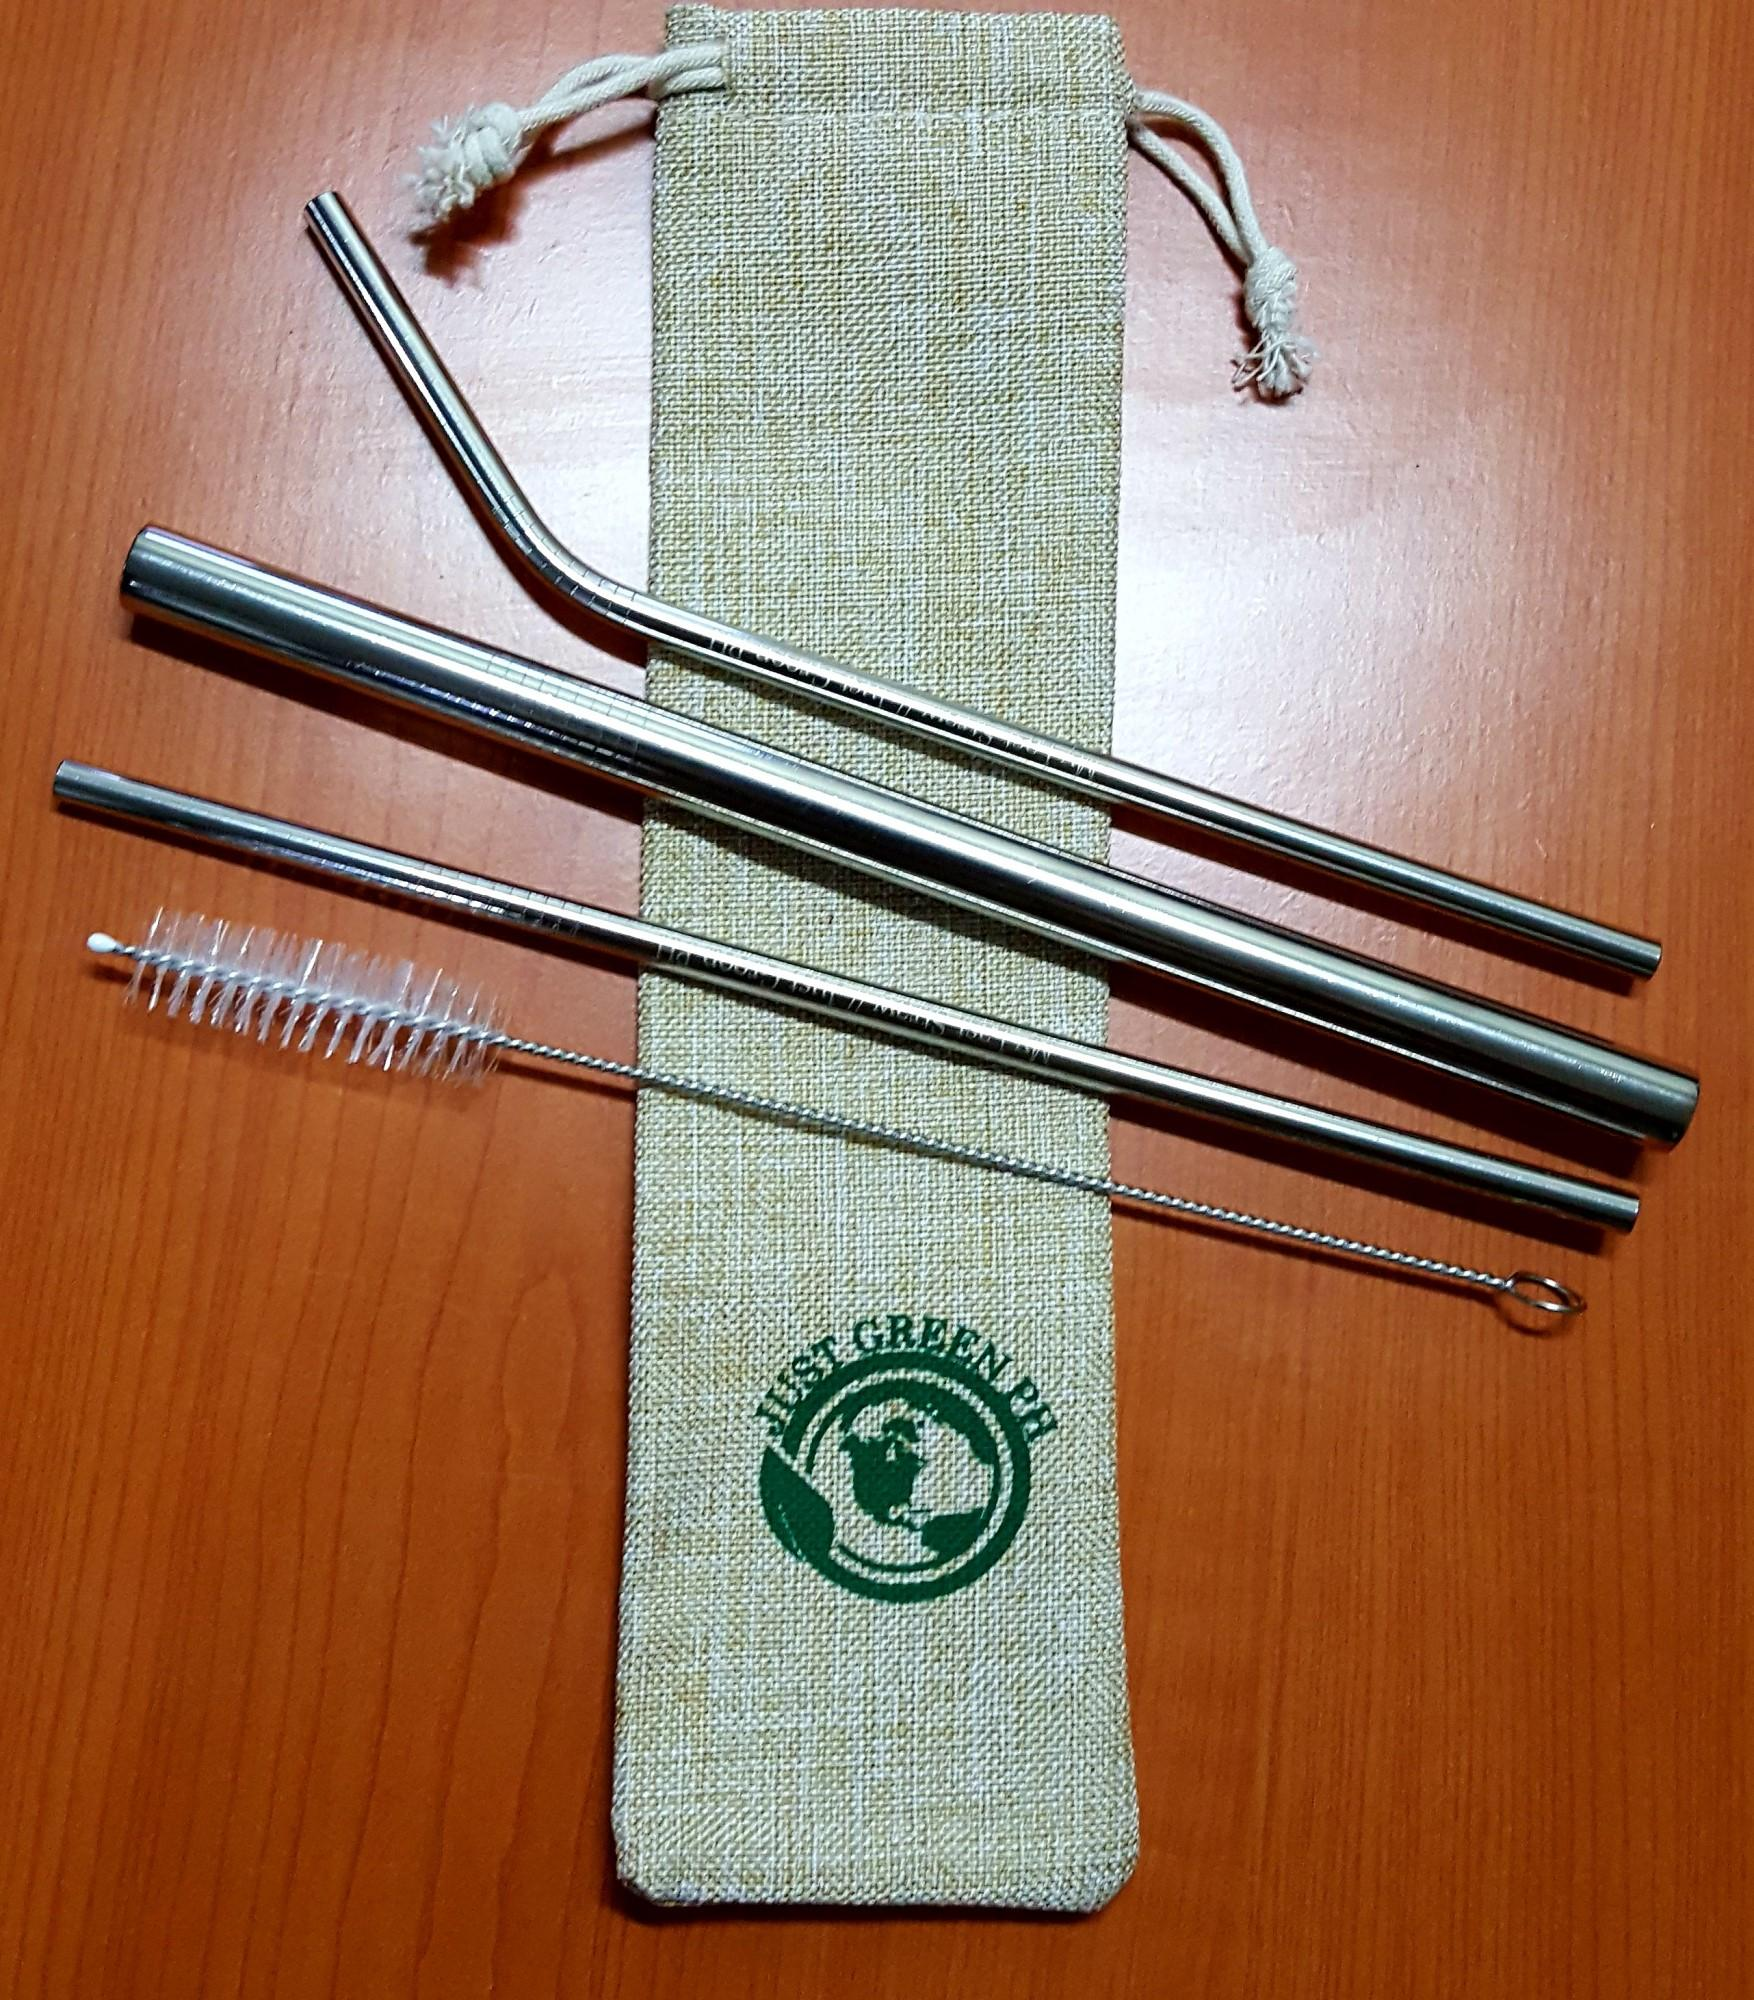 Just Green Ph / All-In Set, Set Of 5 Metal Drinking Straw Set With Free Cleaner And Premium Linen Bag With Free Silicon Tip! / Metal Straw Reusable Stainless Steel Straws For Tumblers, Fda-Approved Environment-Friendly Straws (multicolor) By Just Green Ph.